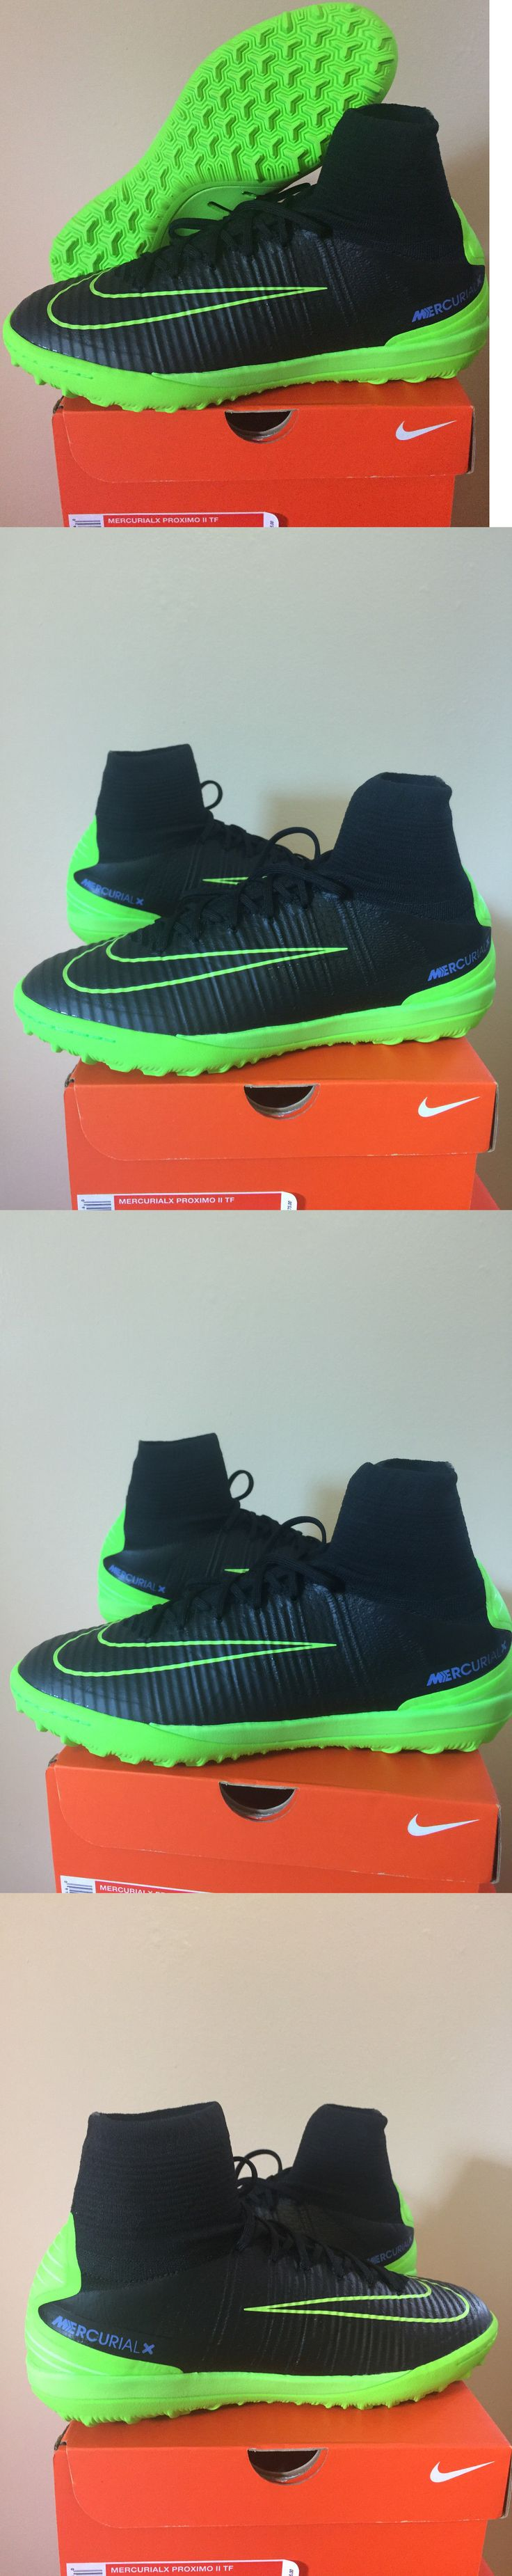 Men 109133: Nike Mercurial X Proximo Ii Tf Electric Green Turf Soccer Shoes Volt Black $175 -> BUY IT NOW ONLY: $57 on eBay!